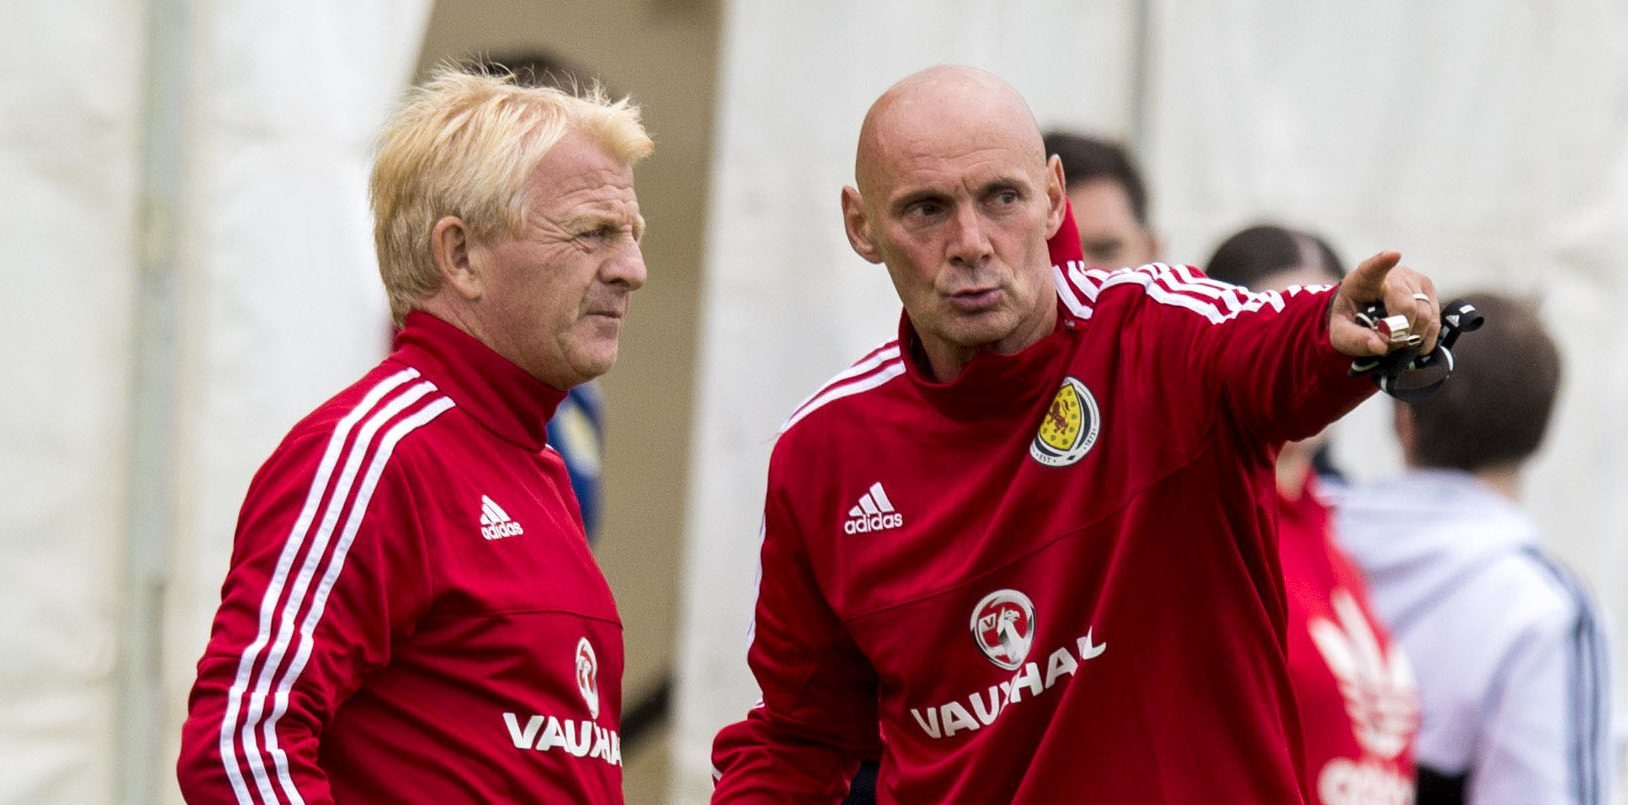 Andy Watson, right, with Gordon Strachan.